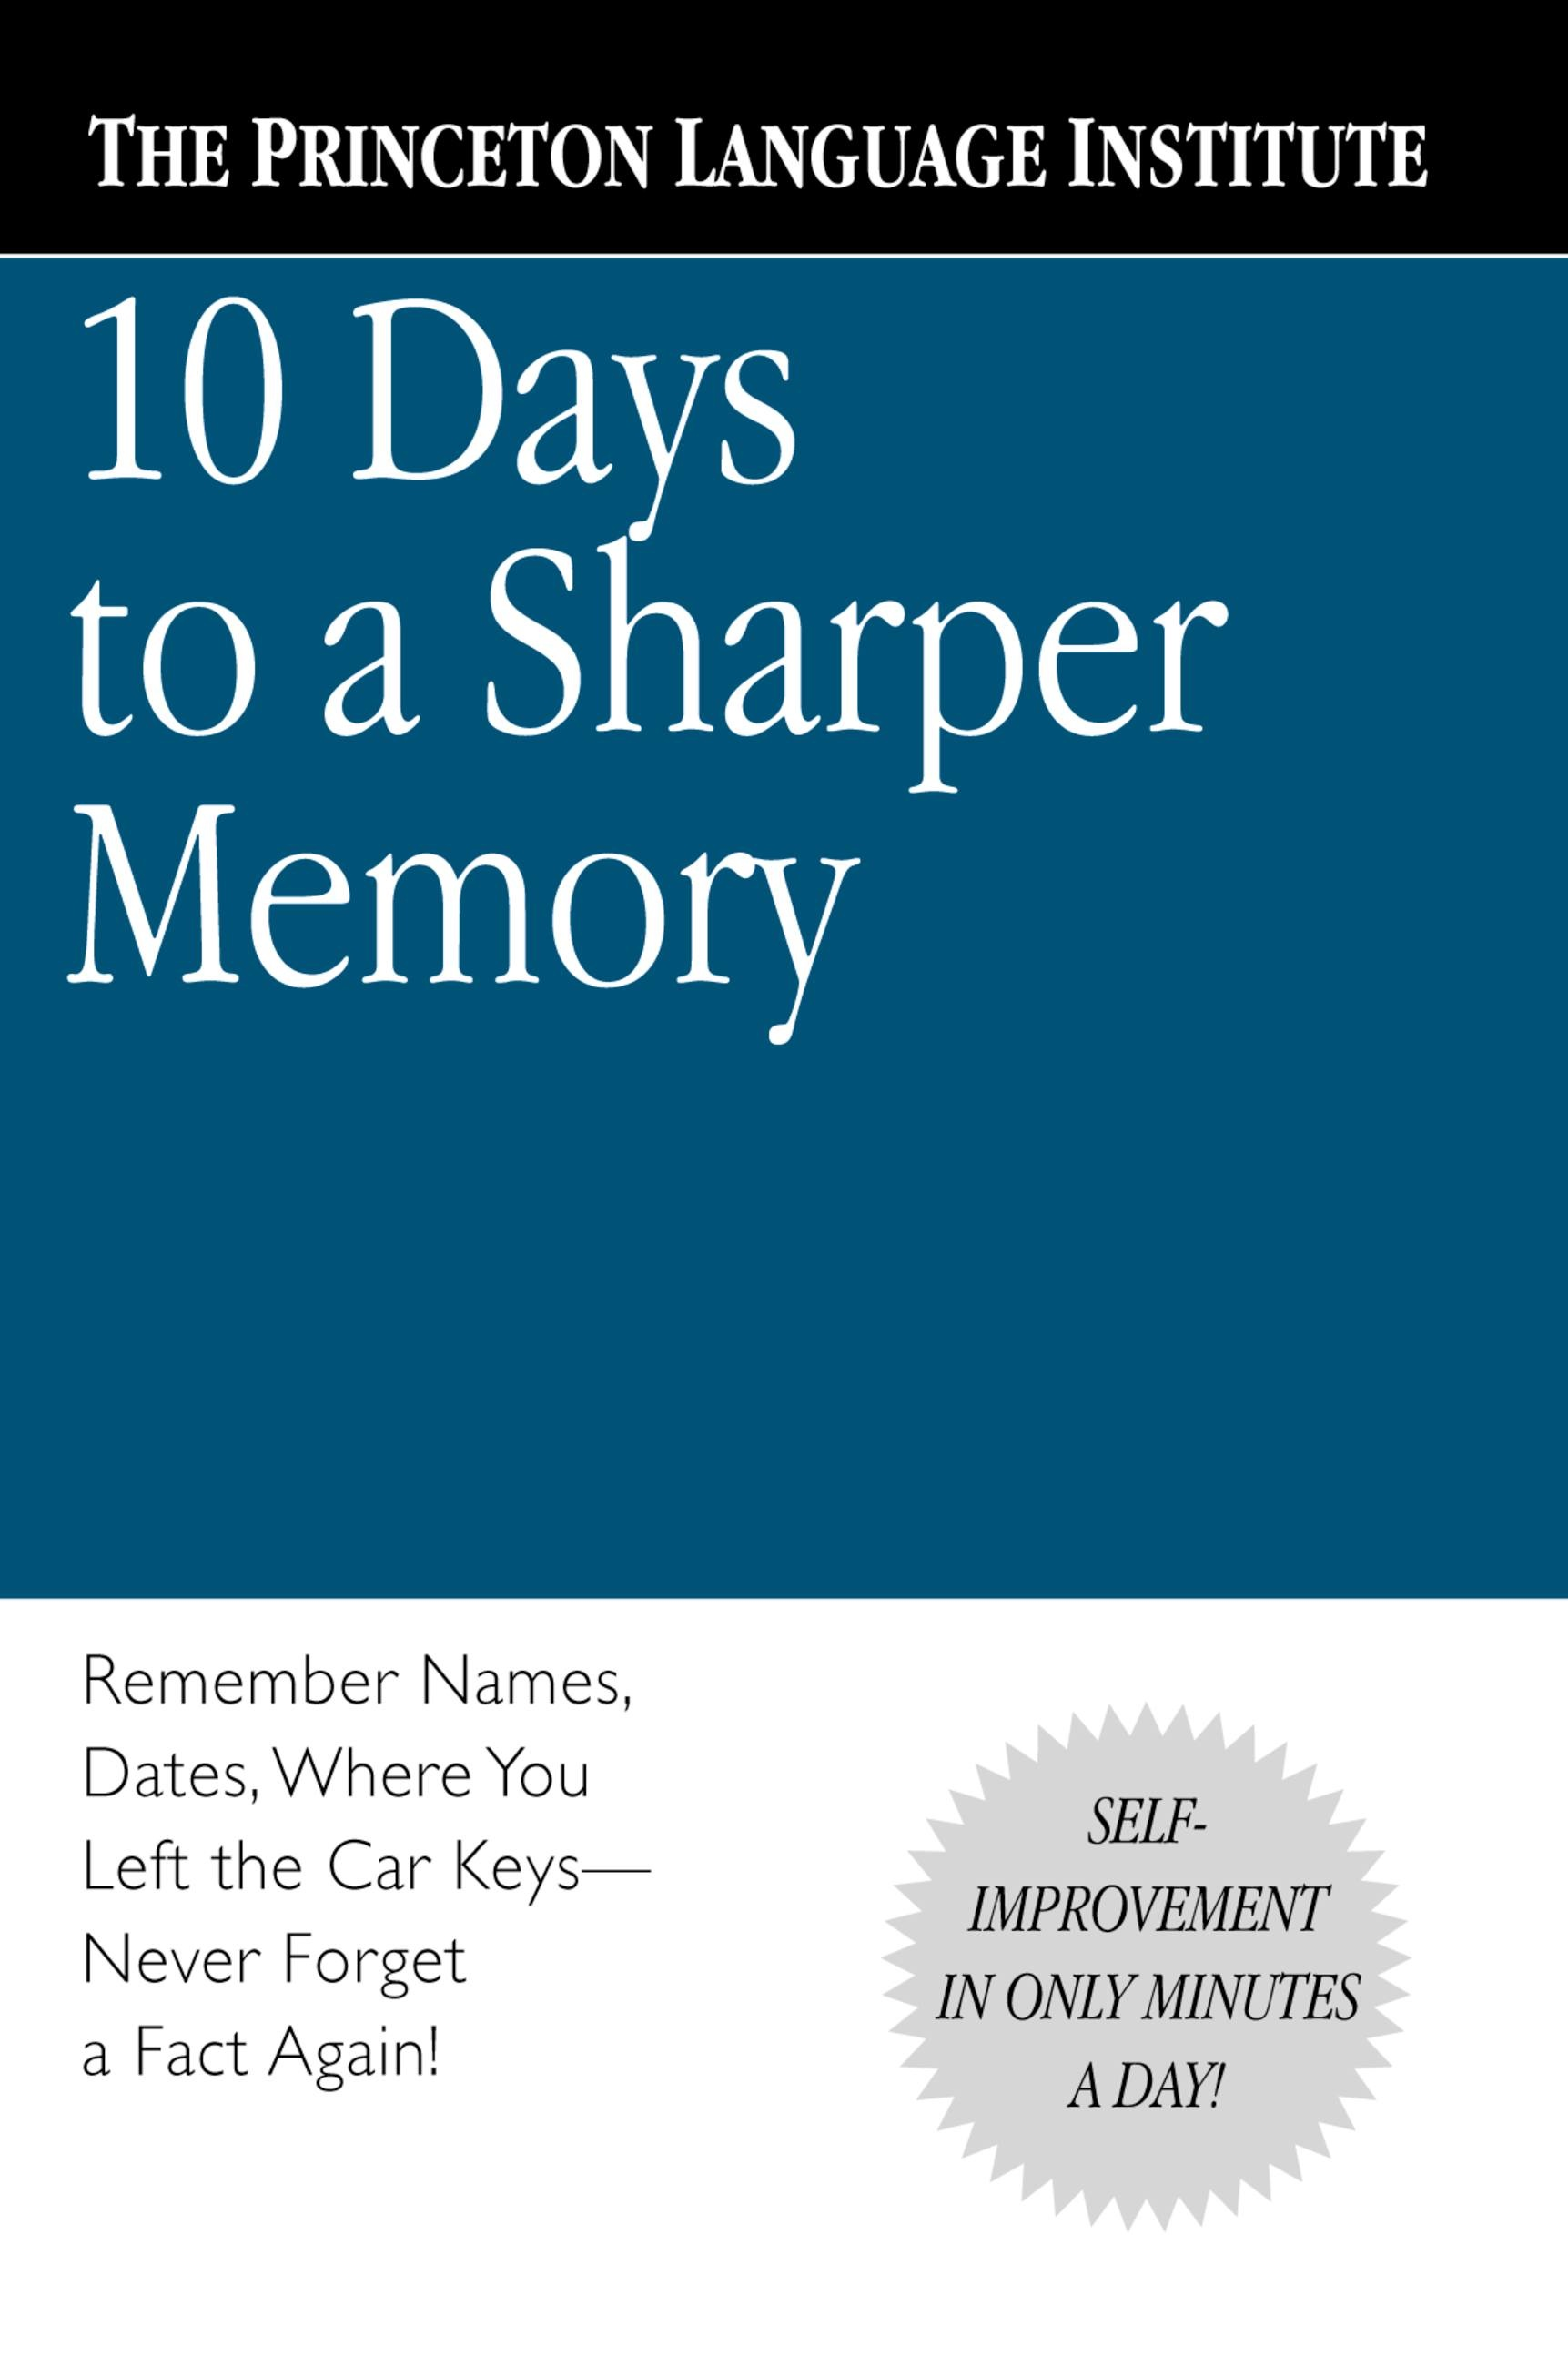 10 Days to a Sharper Memory